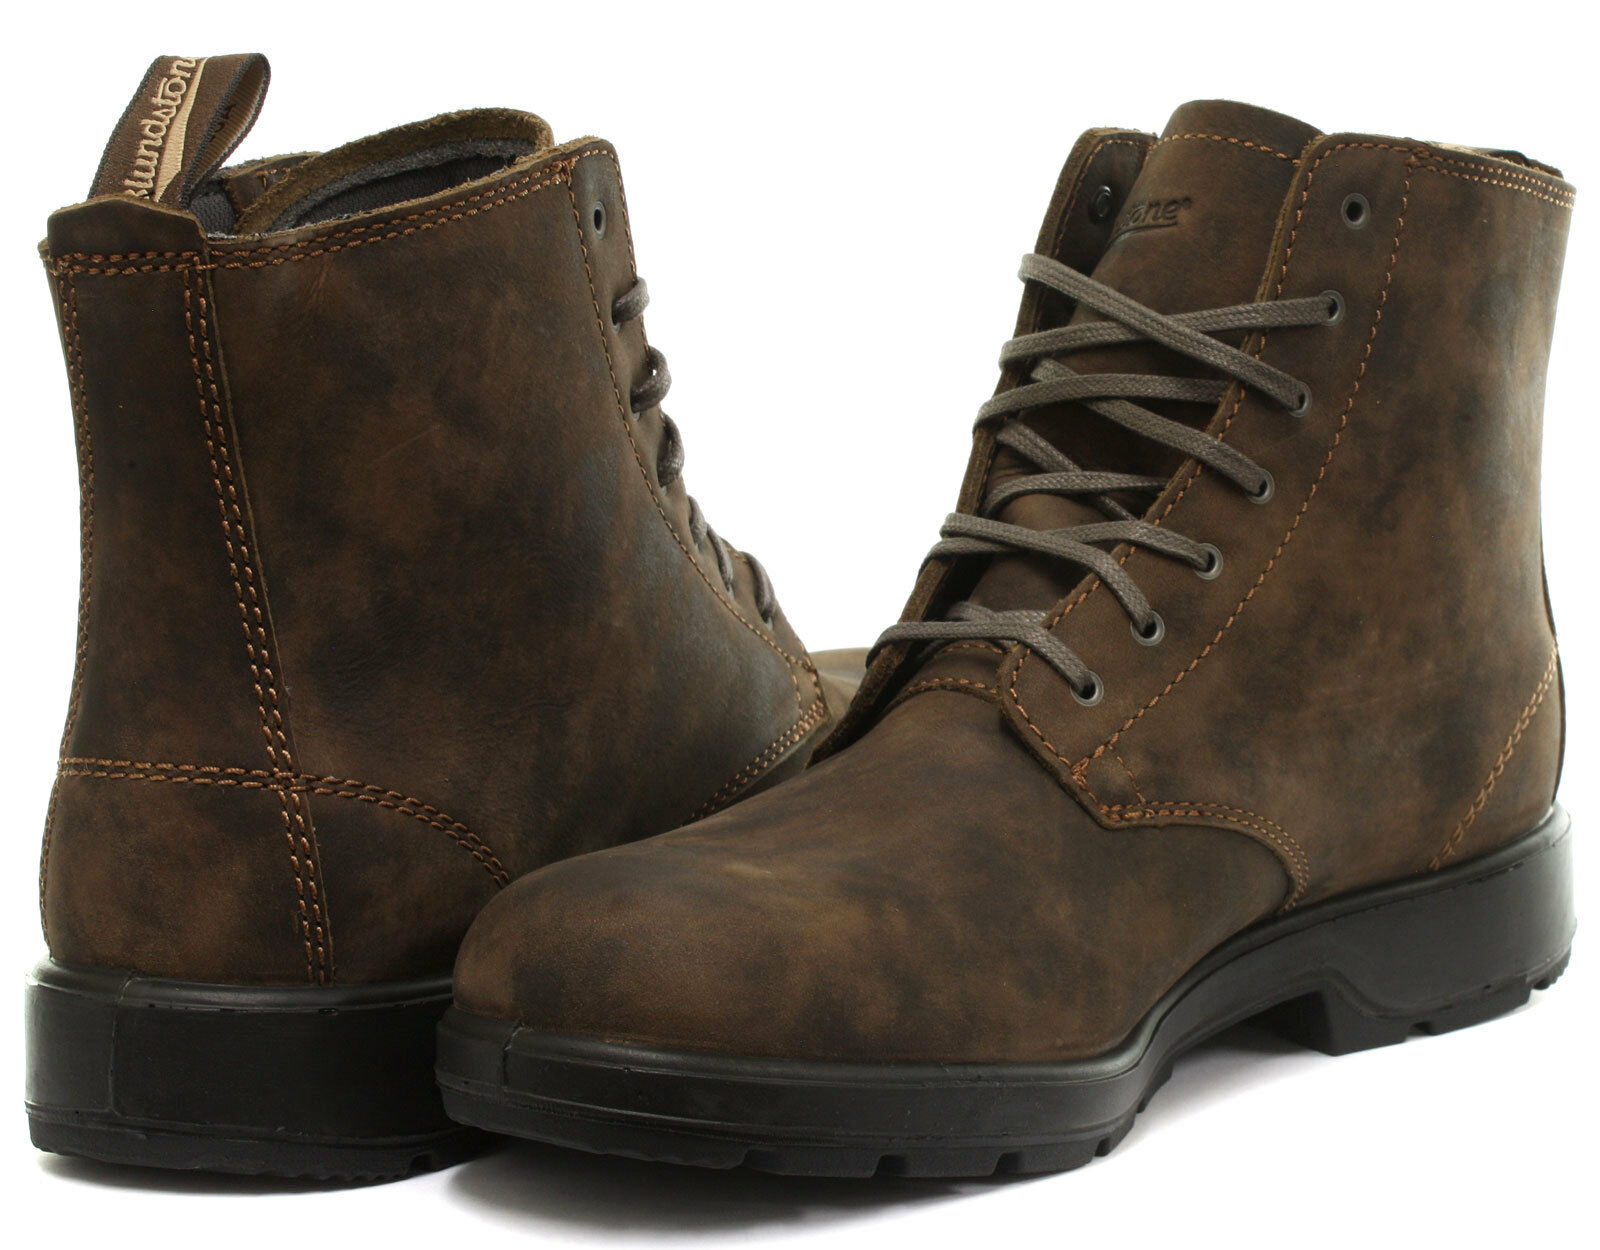 Blundstone Lace-Up Lace-Up Lace-Up stivali Uomo Dimensione(Waterproof, Slip Resist, LT Weight, 7colores) 47918d